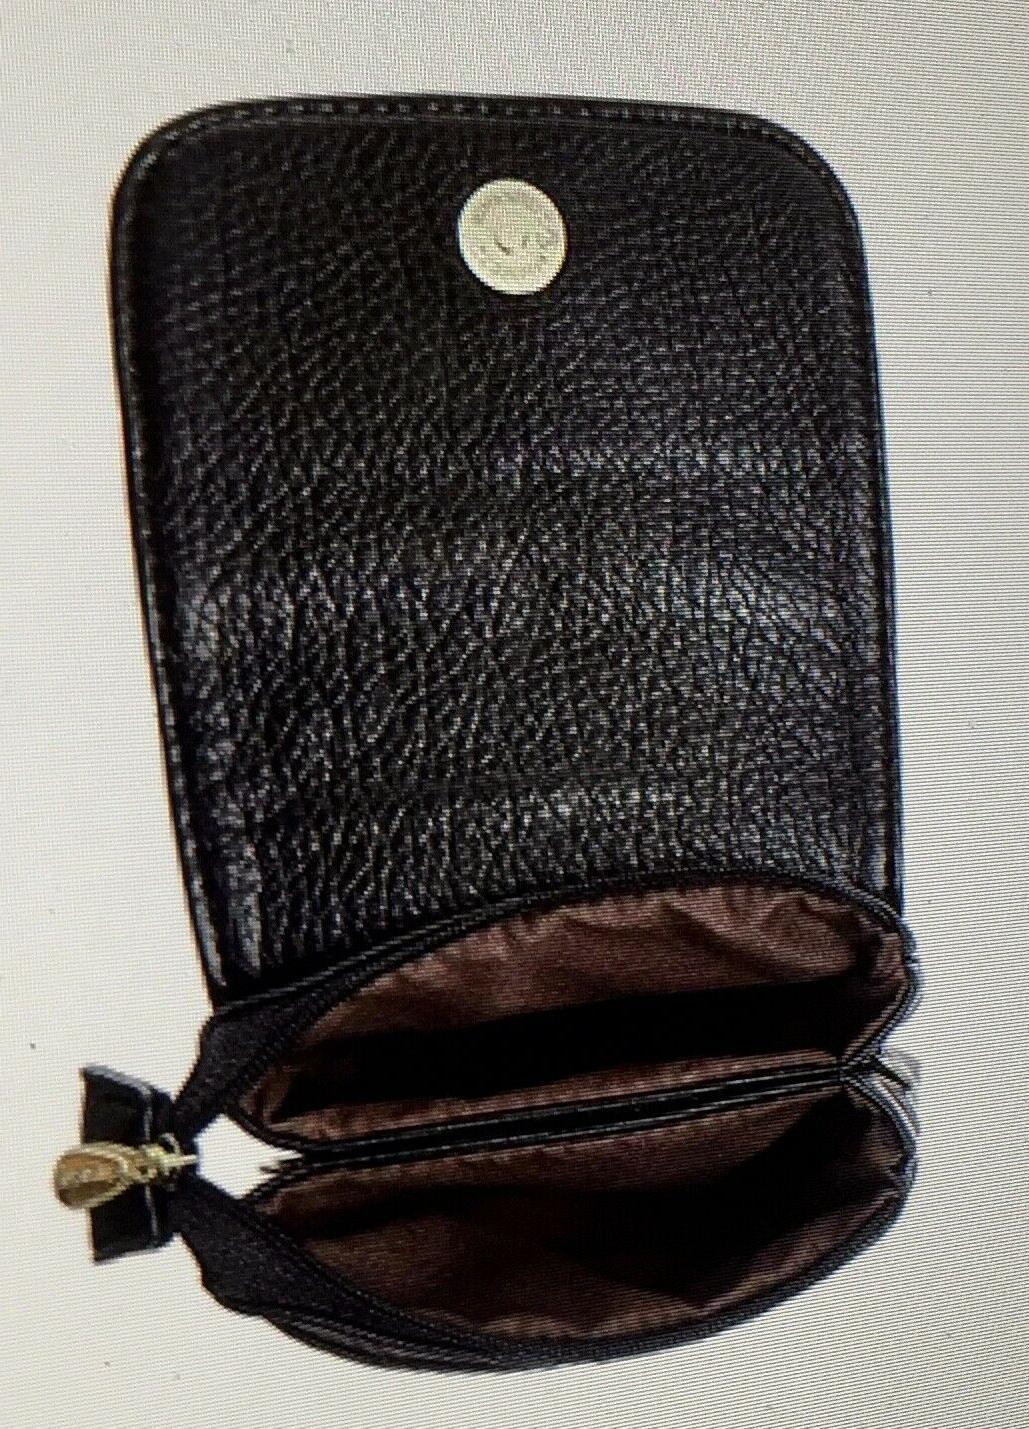 MINICAT Roomy Pockets Small Cell Phone Purse